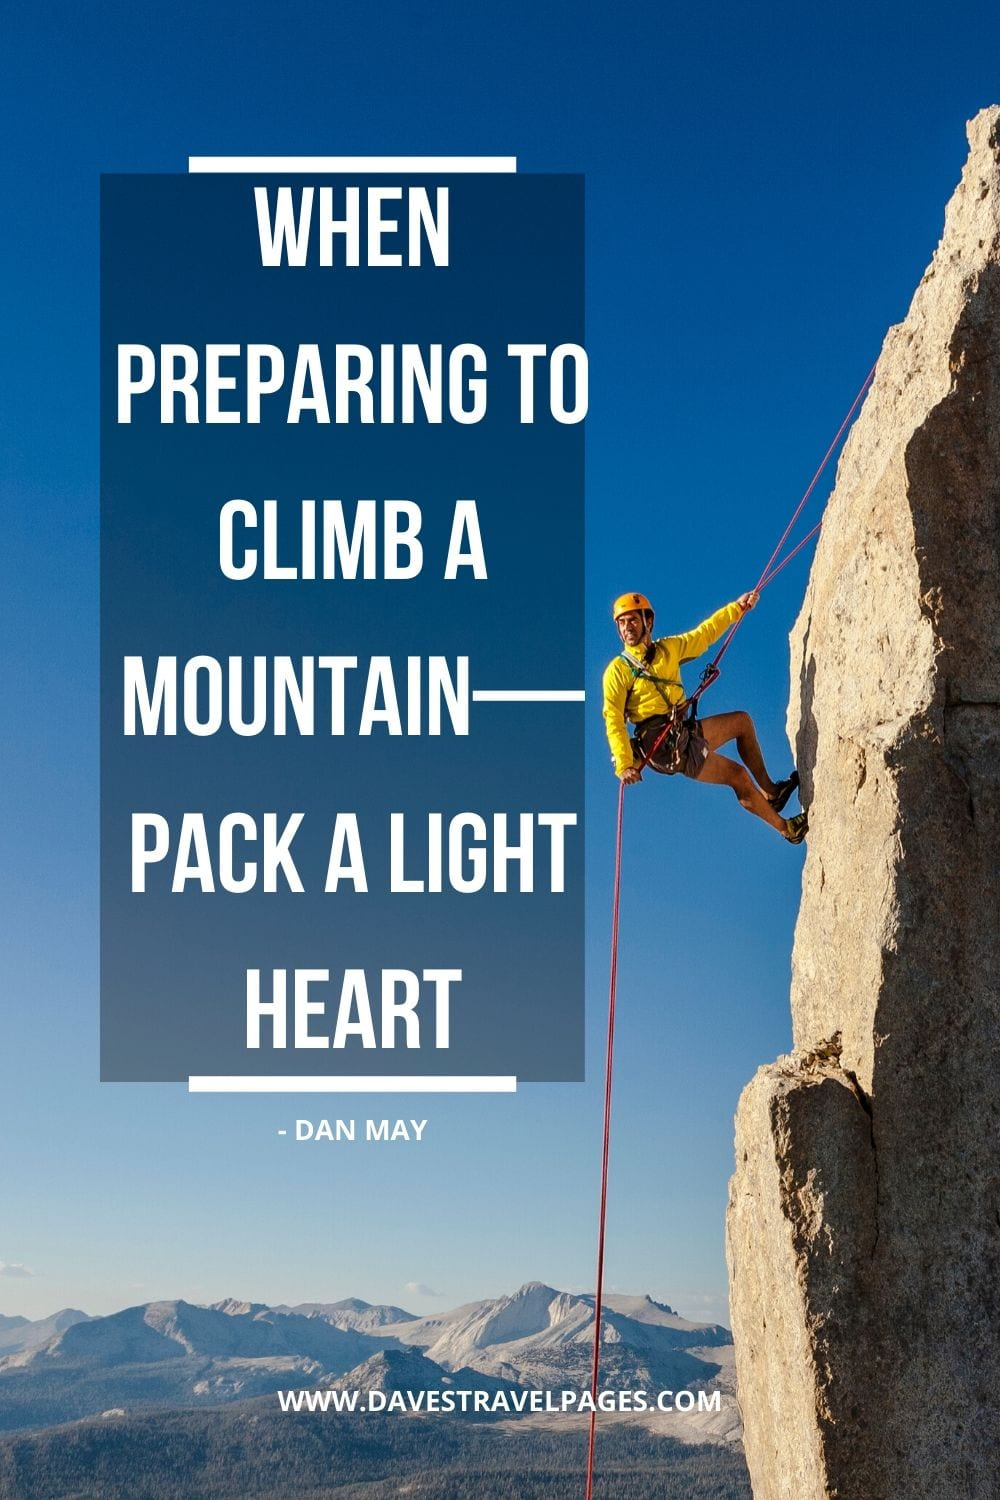 Adventure Travel Quotes: When preparing to climb a mountain—pack a light heart. - Dan May